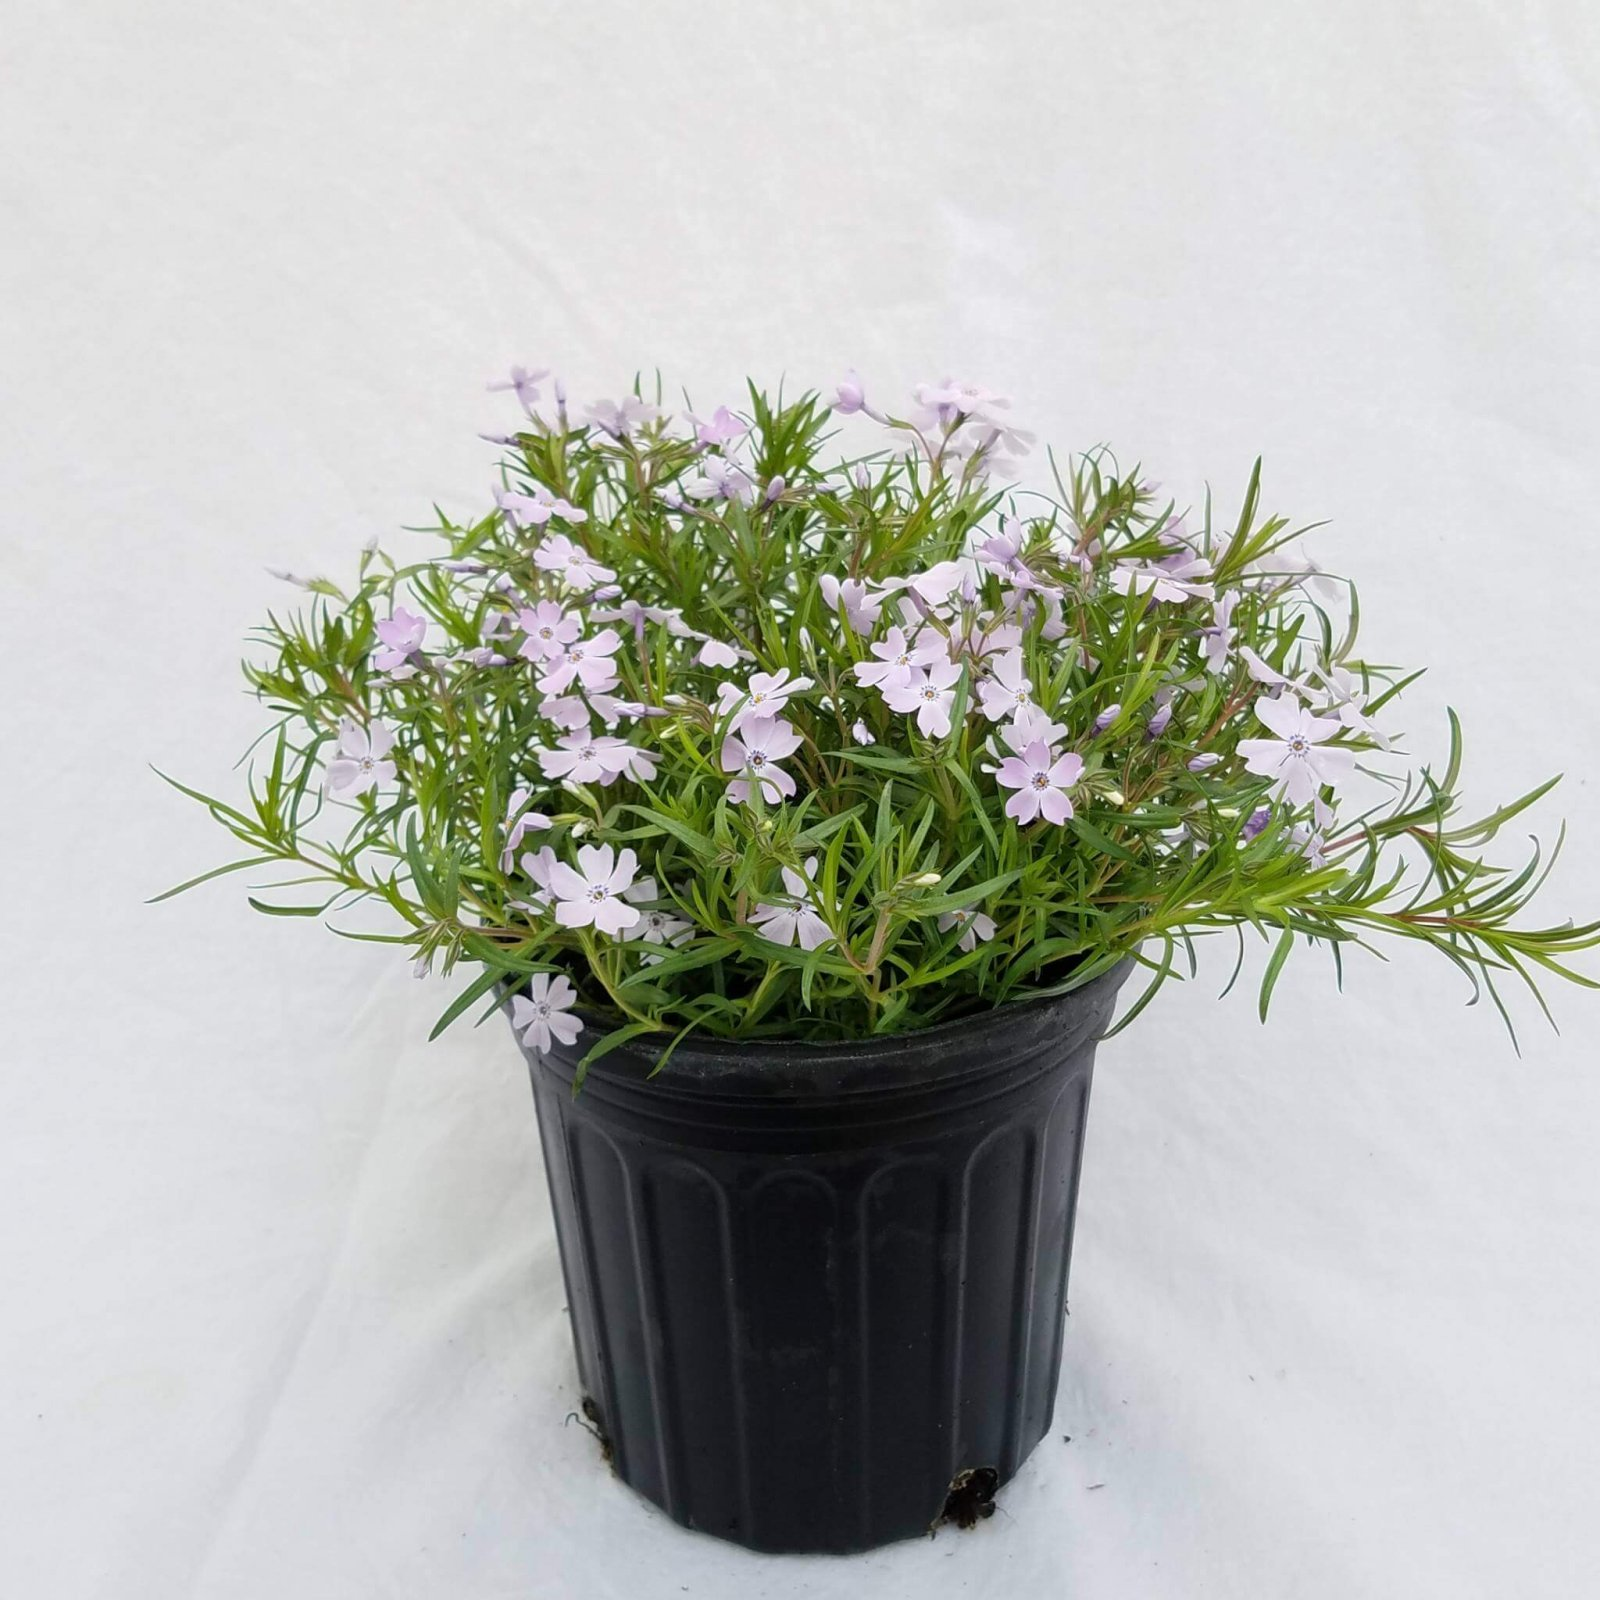 Phlox subulata 'Emerald Blue' - #1